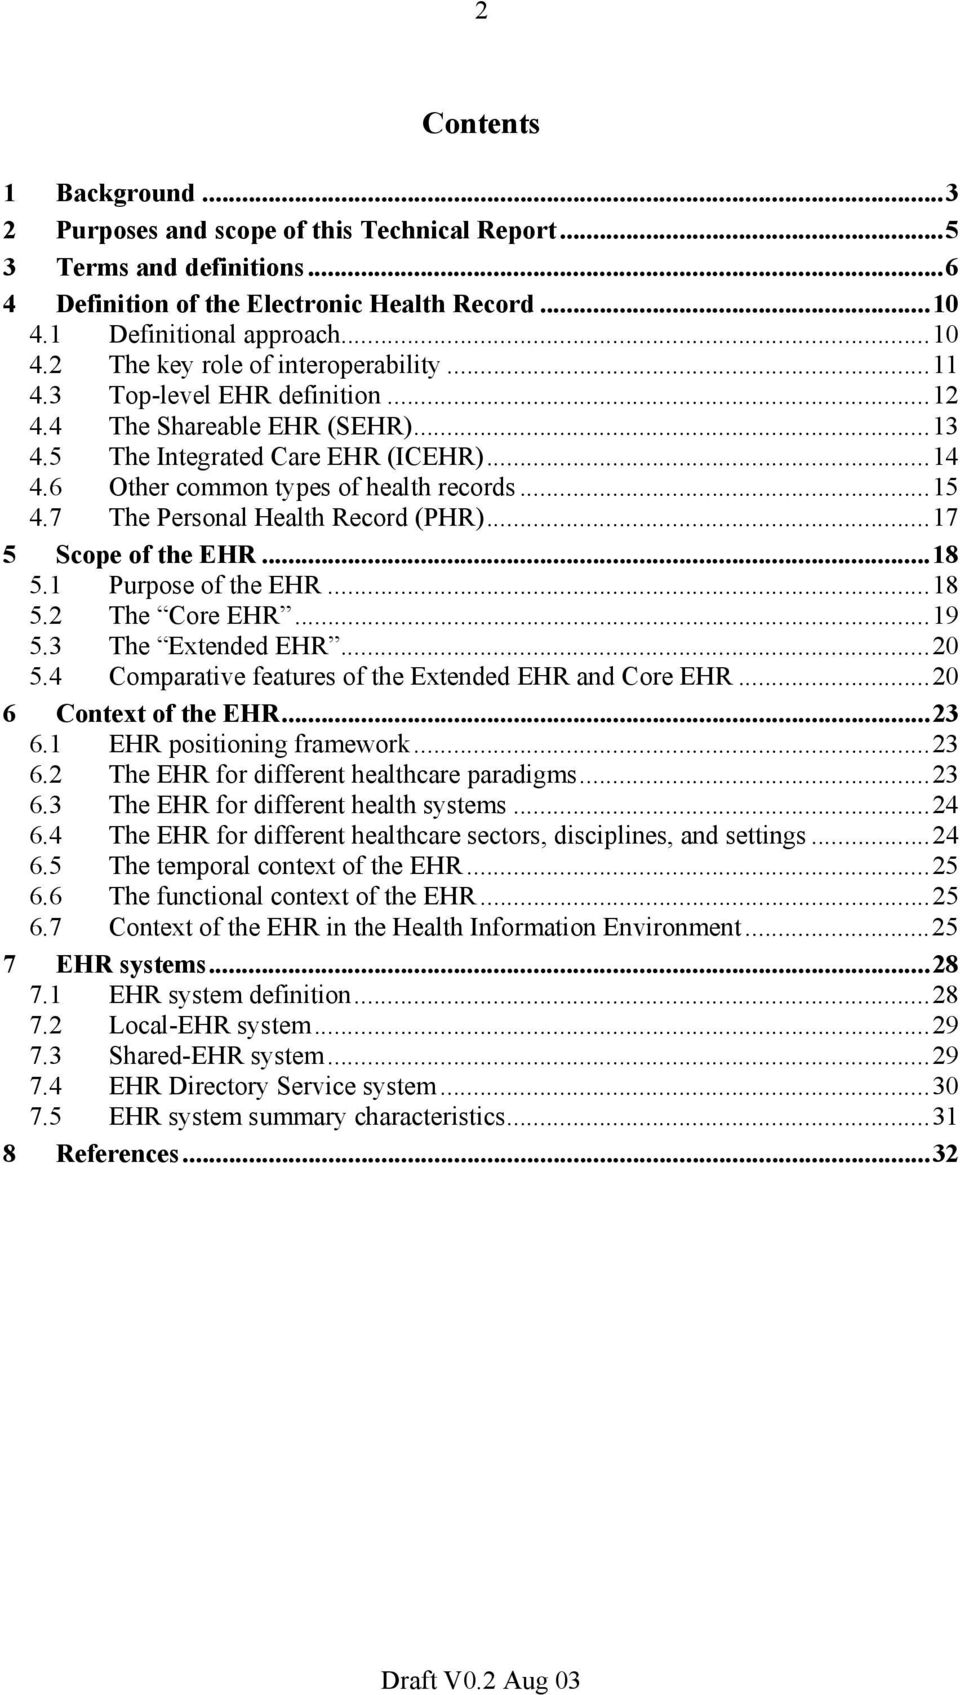 ..17 5 Scope of the EHR...18 5.1 Purpose of the EHR...18 5.2 The Core EHR...19 5.3 The Extended EHR...20 5.4 Comparative features of the Extended EHR and Core EHR...20 6 Context of the EHR...23 6.